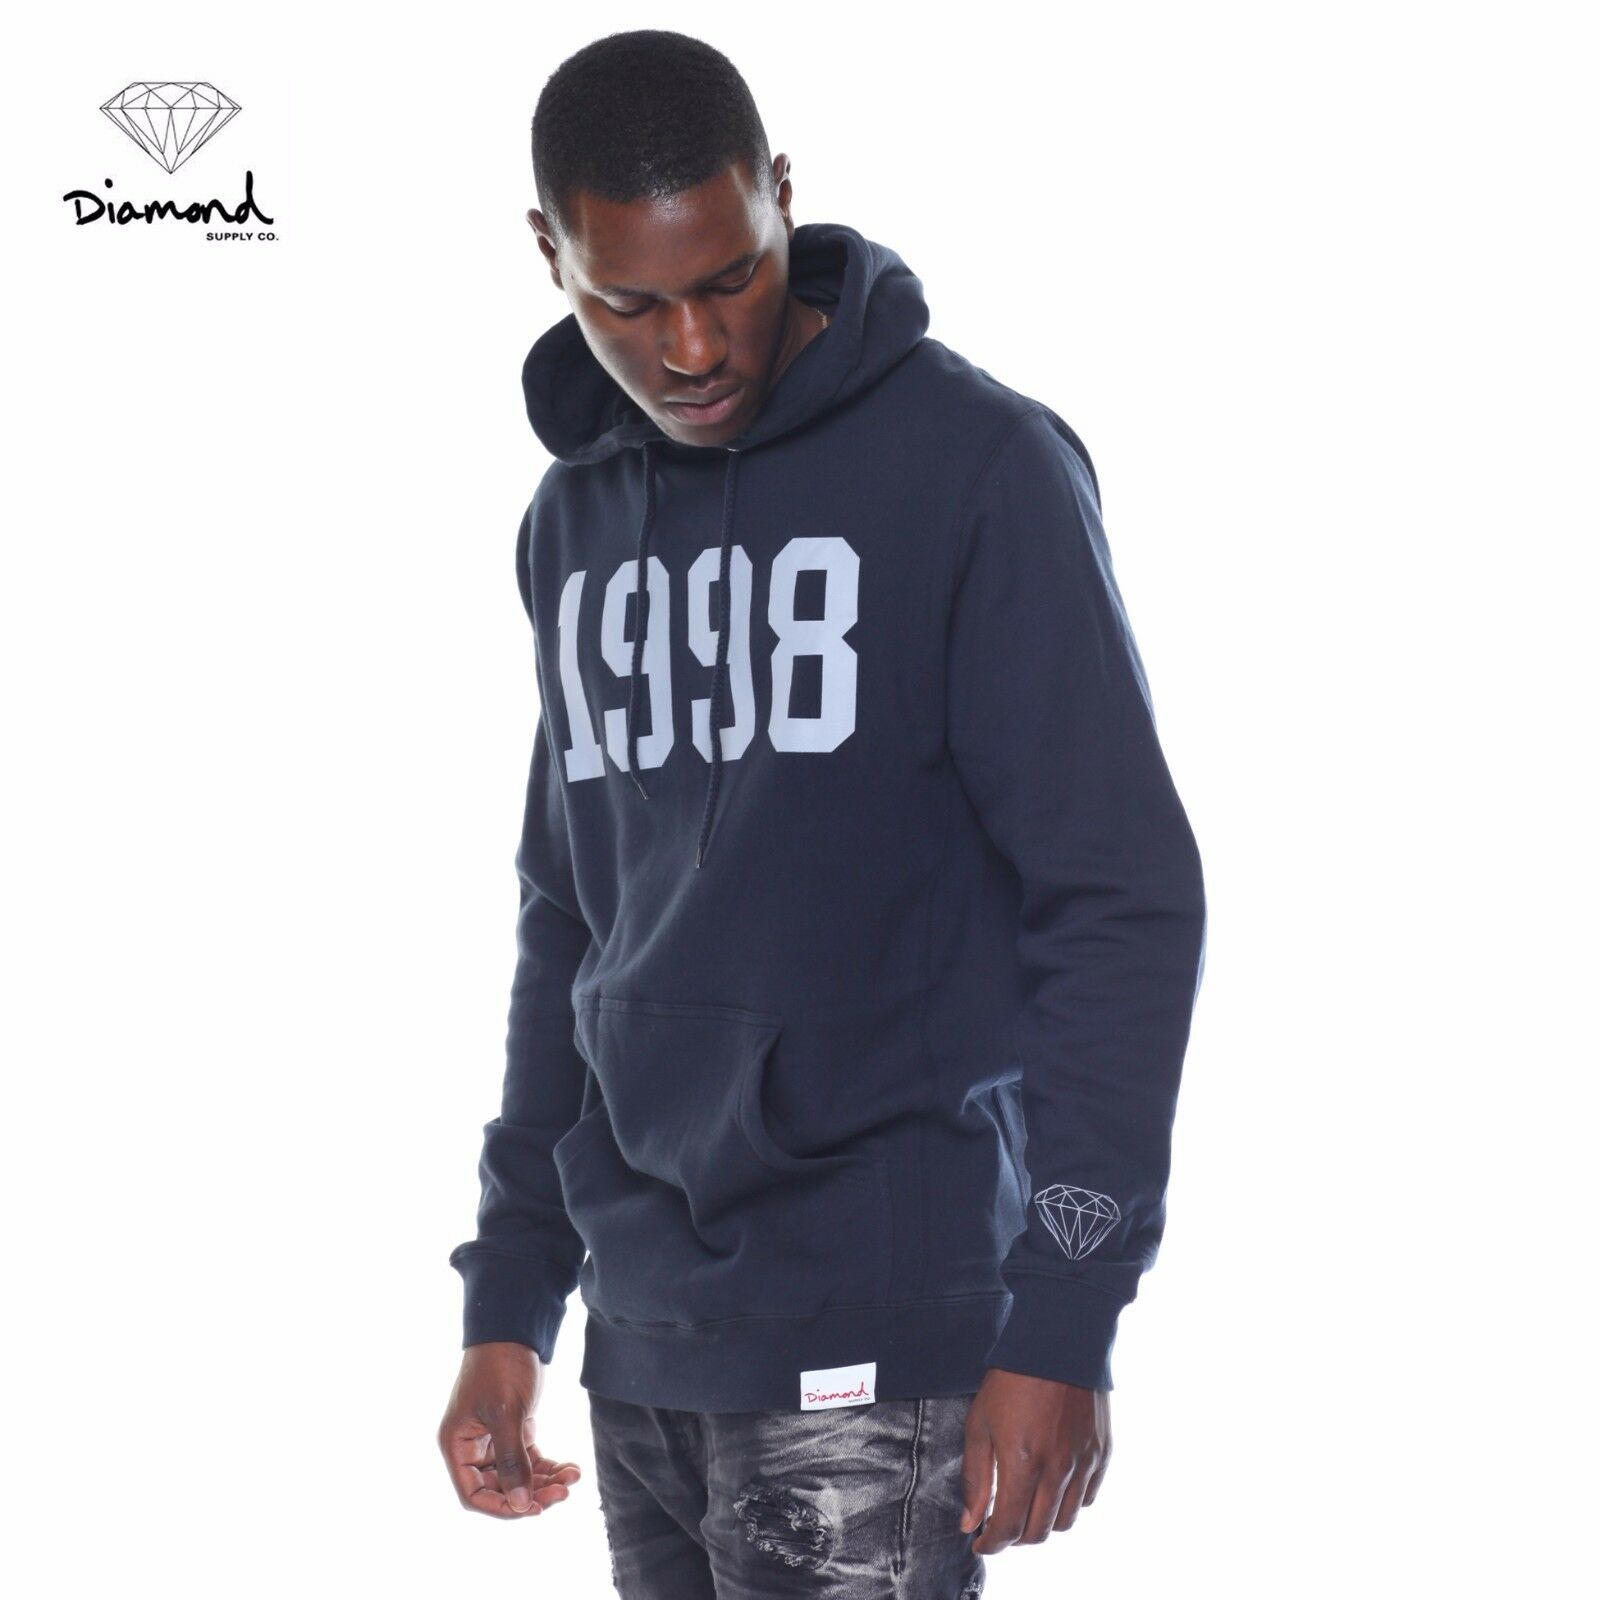 Diamond Supply Co Since 1998 Pullover Hoodie Navy L NWT NEW 85  Skate Snow